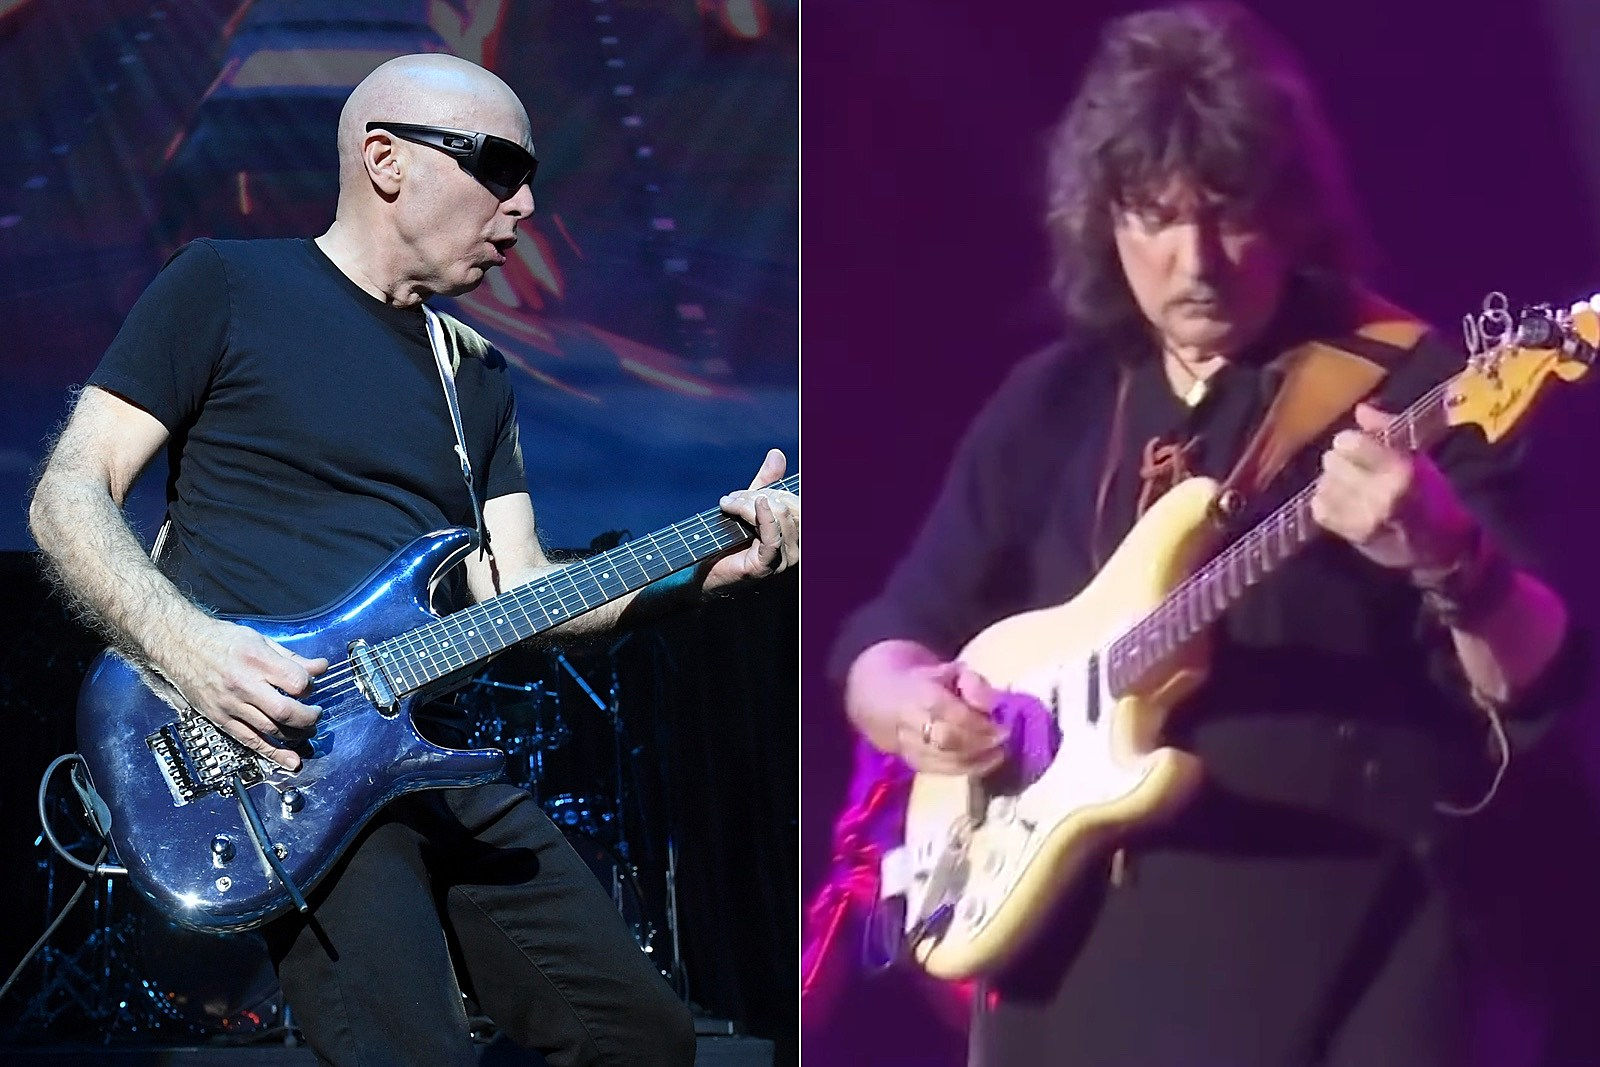 Joe Satriani Responds to Ritchie Blackmore's Criticism